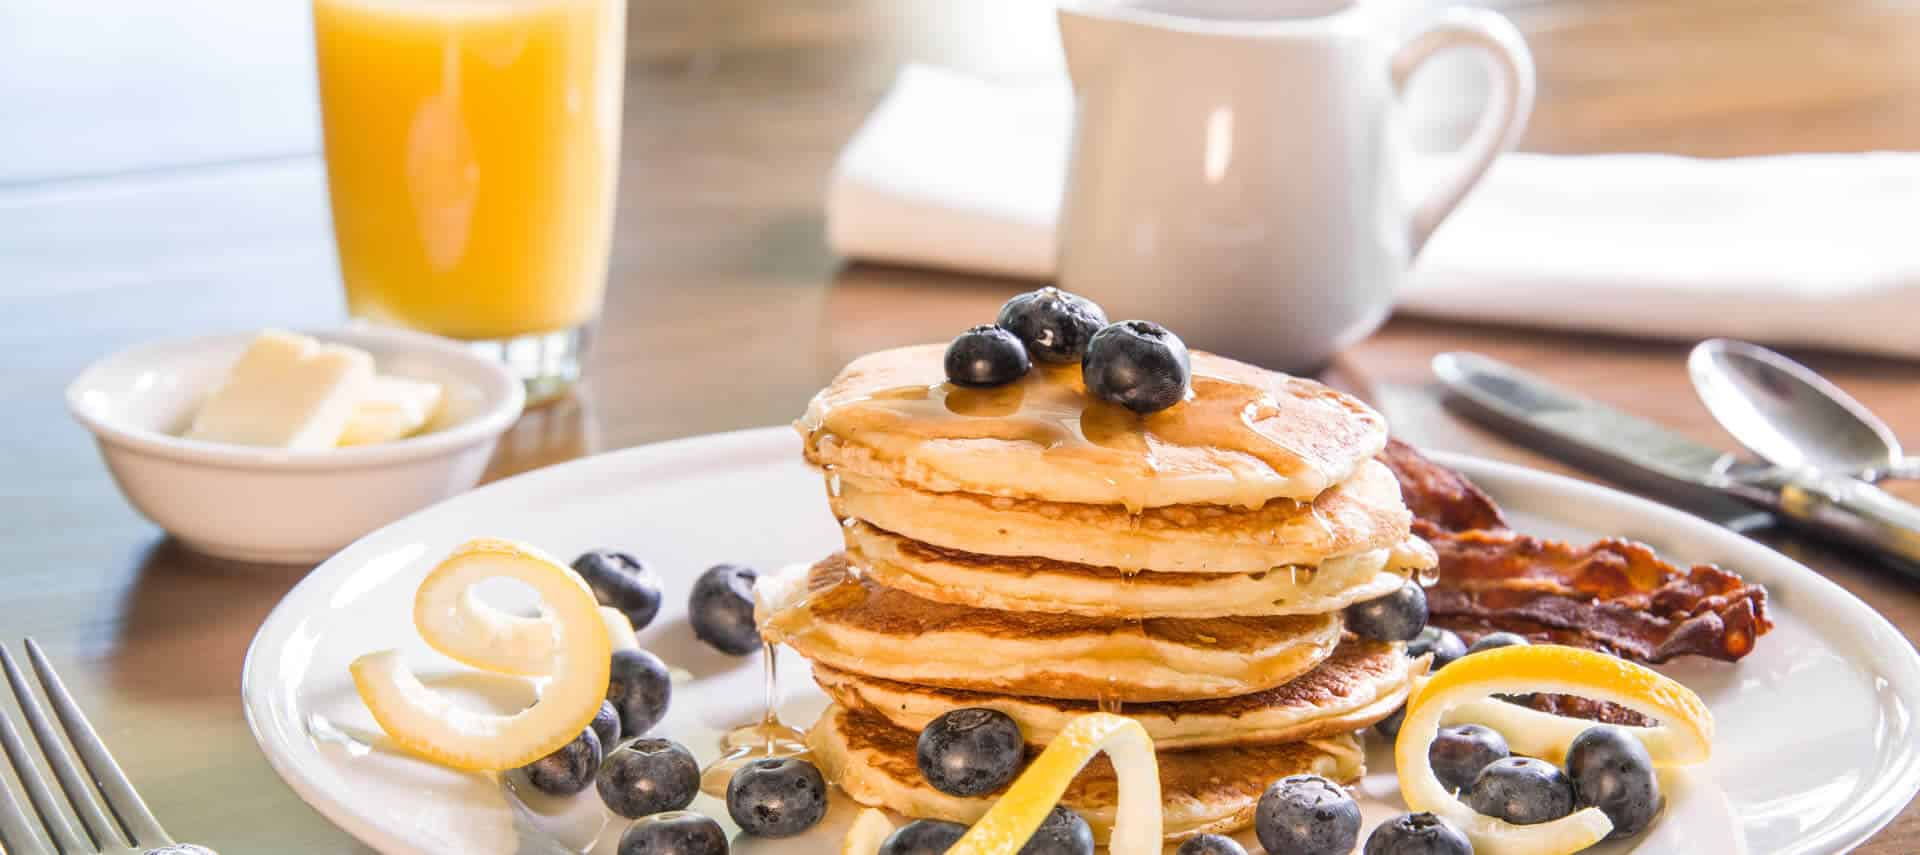 A stack of fluffy pancakes garnished with blueberries accompanies bacon on a white plate next to syrup and juice.